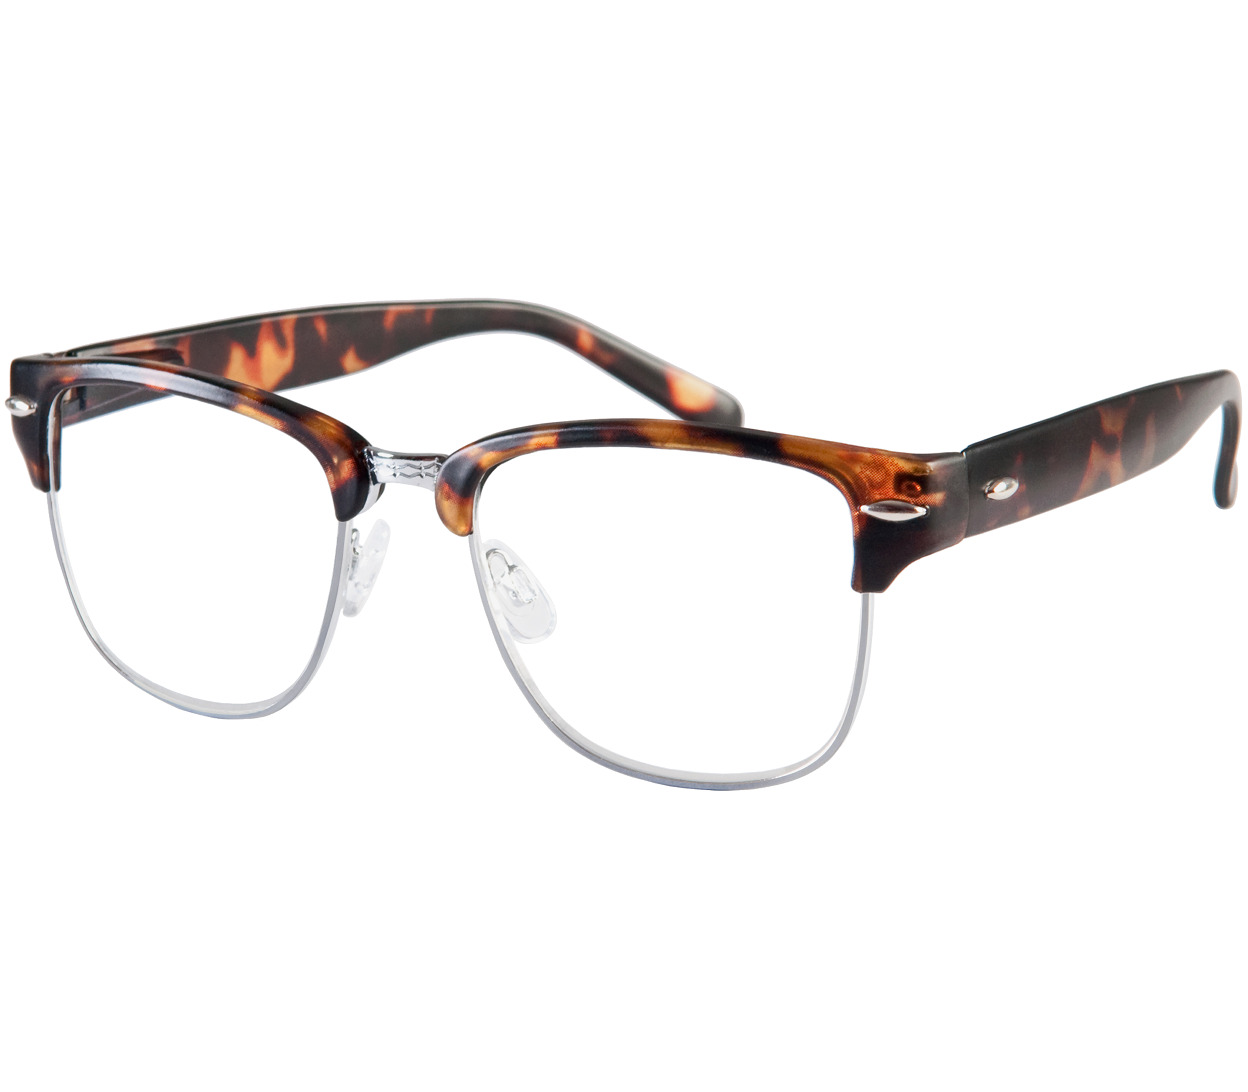 Main Image (Angle) - Harvard (Tortoiseshell) Retro Reading Glasses